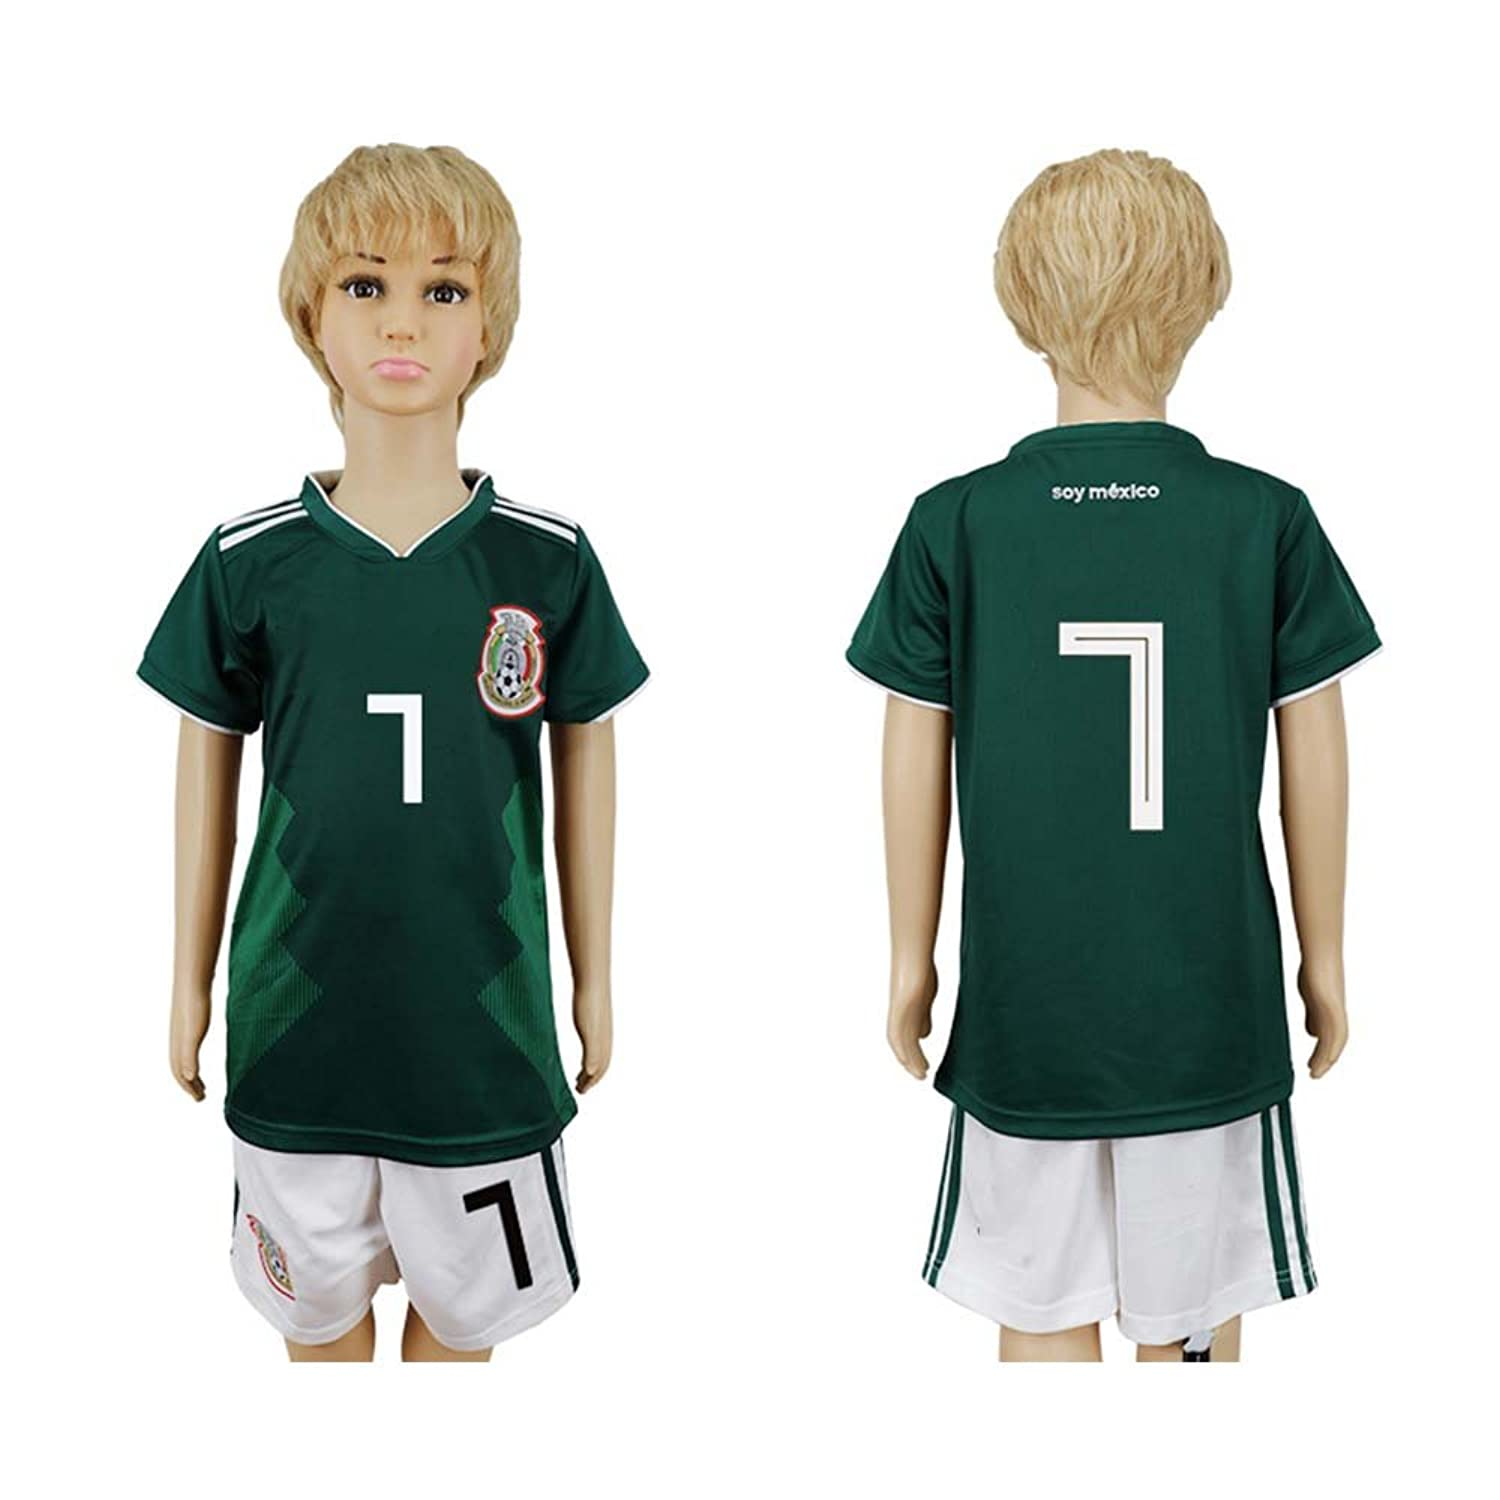 Puizozi SHIRT ボーイズ B07D3JNGKG20# (5 to 6 Years Old)